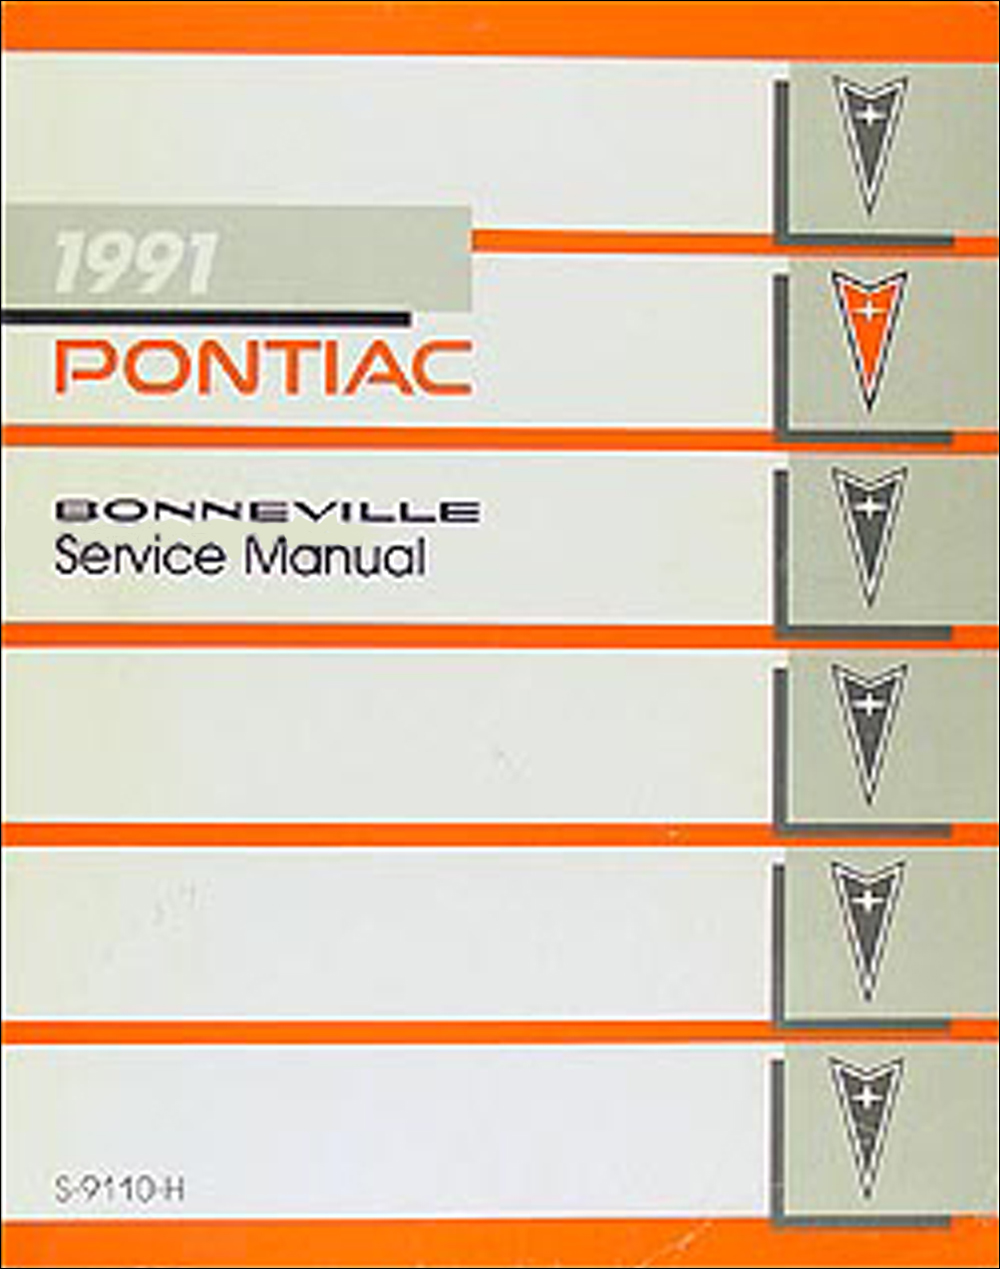 1991 Pontiac Bonneville Repair Manual Original